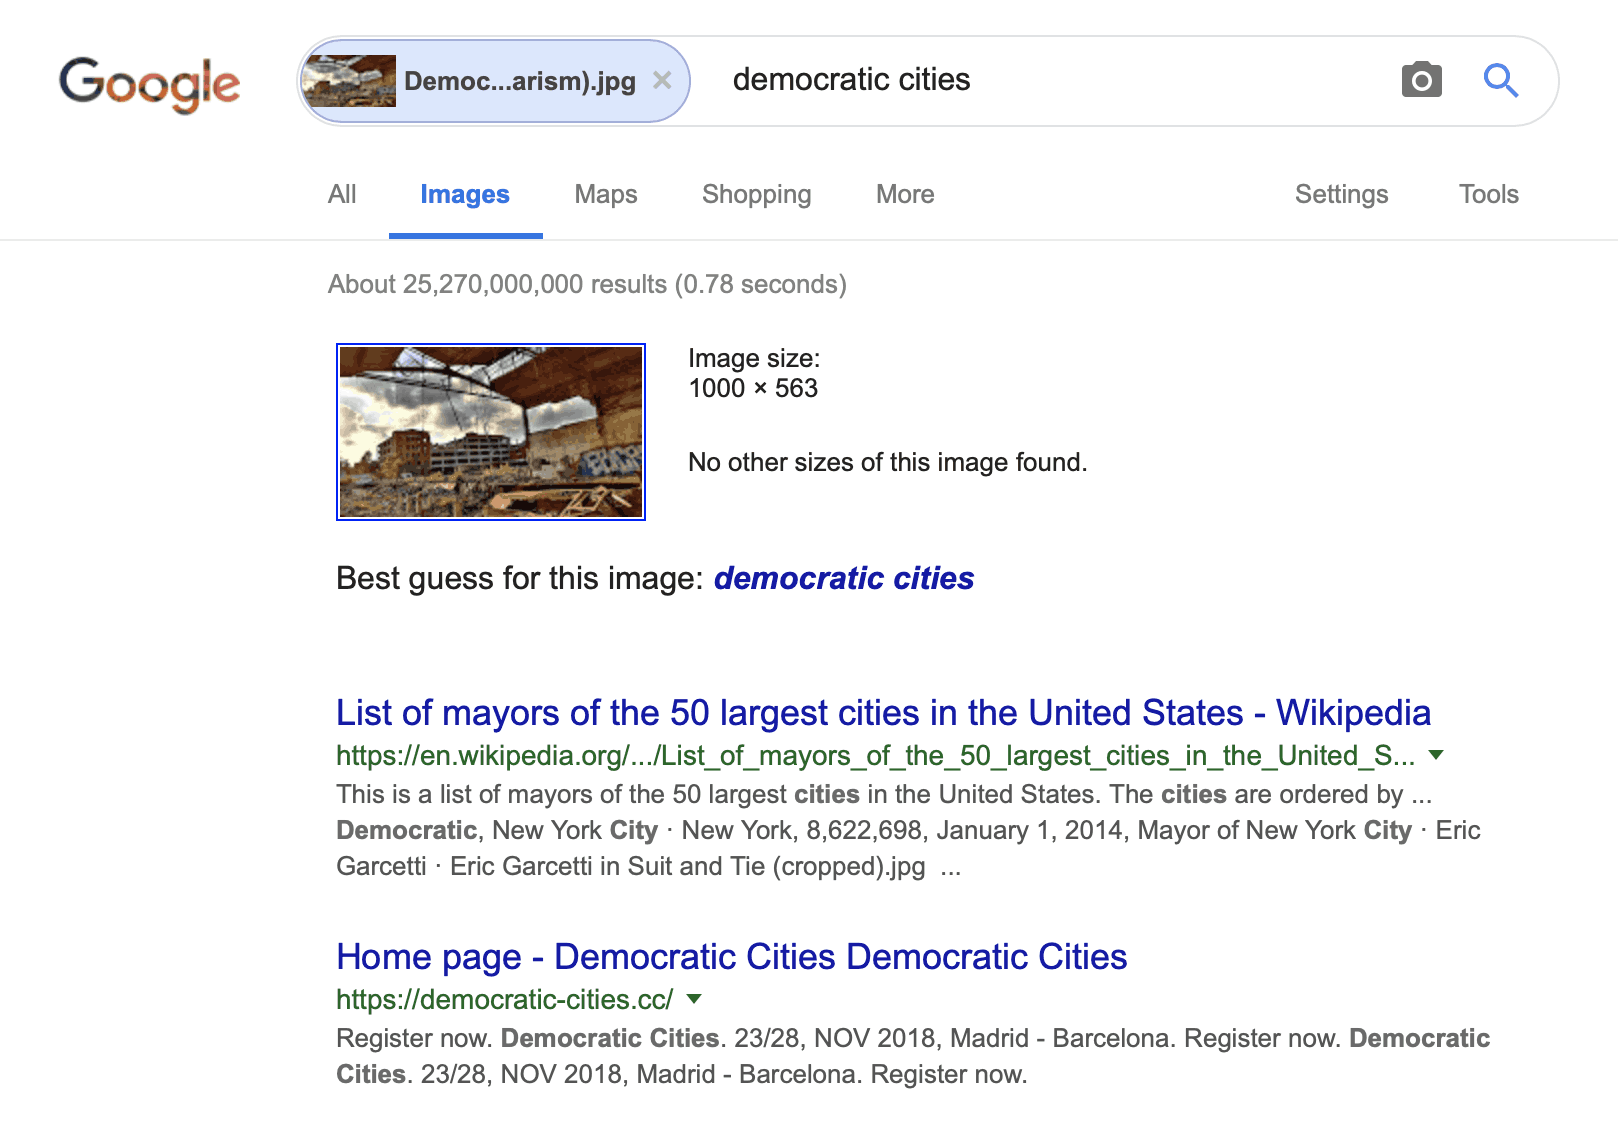 Best guess: Democratic cities